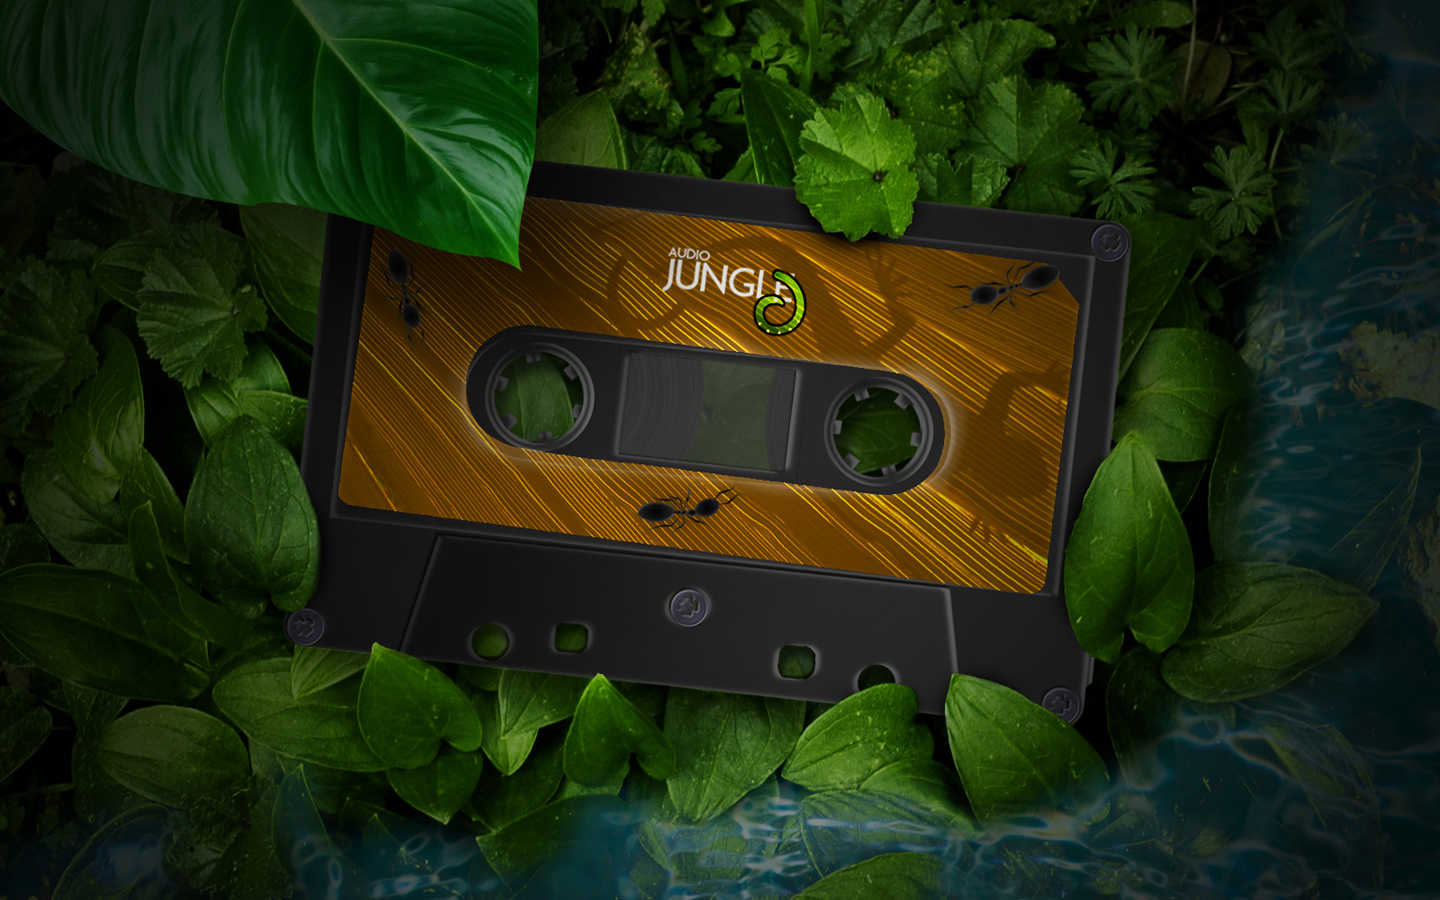 wallpapers of jungle,jungle wallpaper,jungle background,jungle theme,jungle